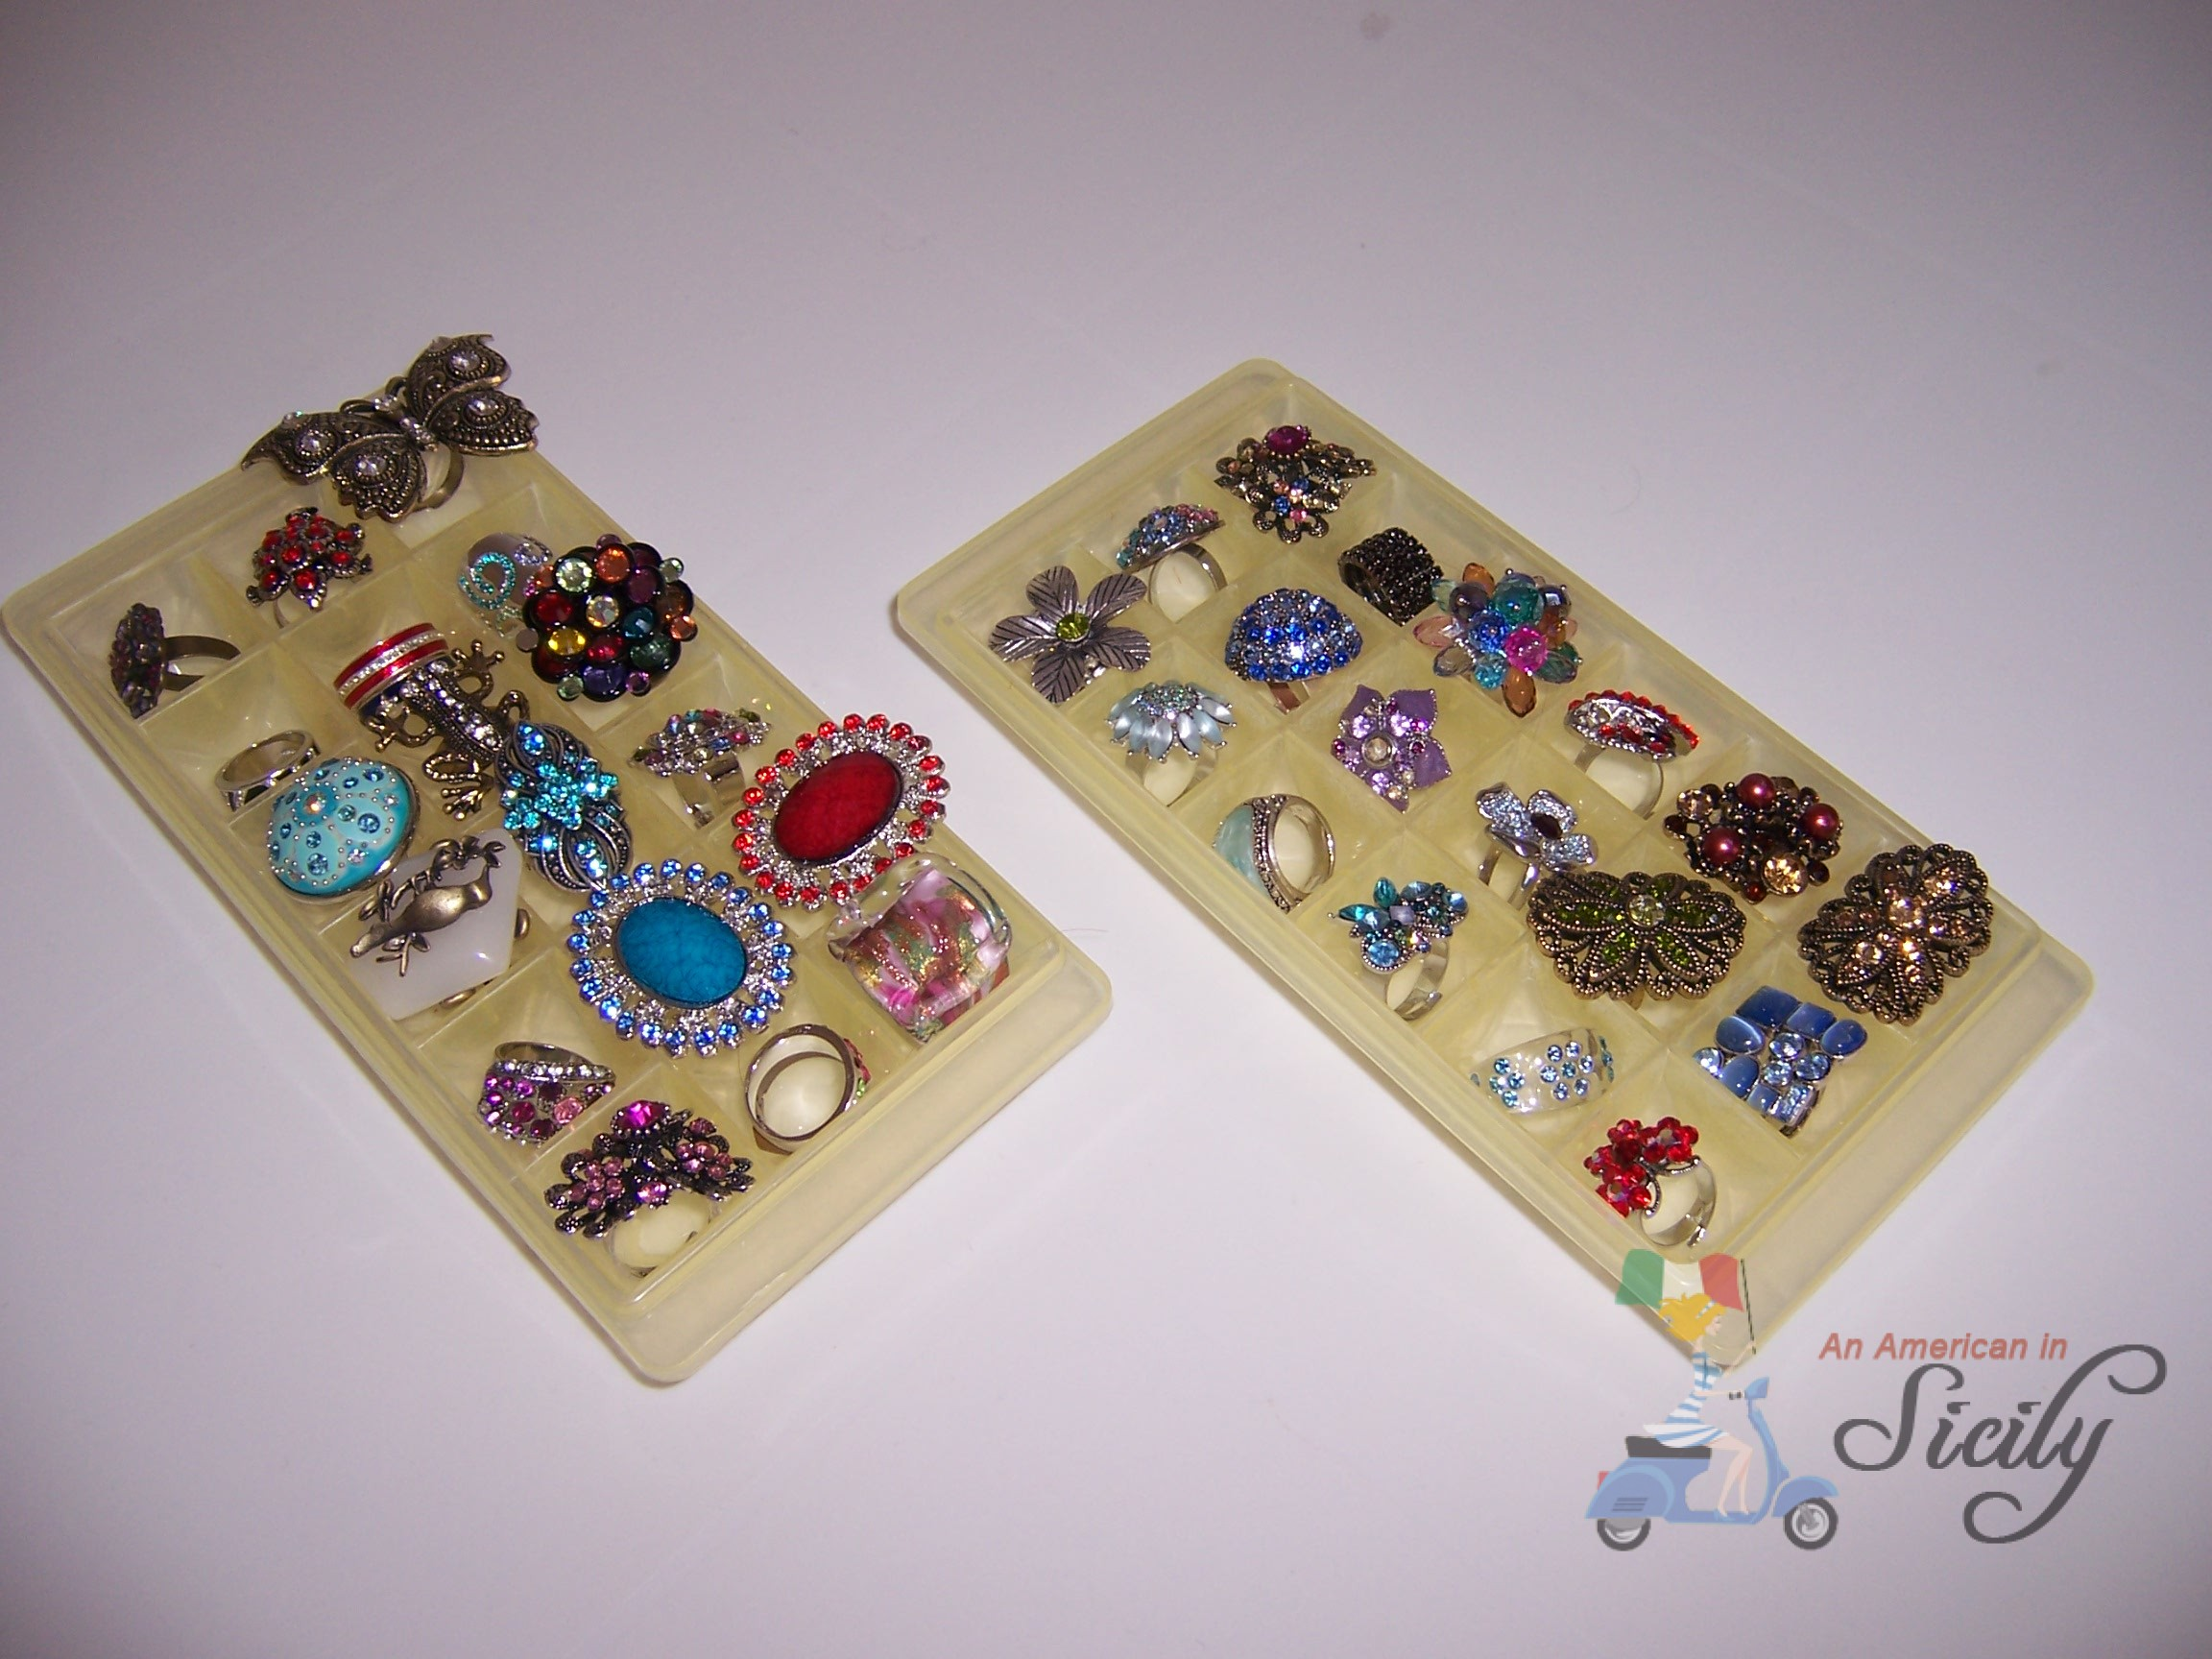 jewelry organizer Archives An American in Sicily